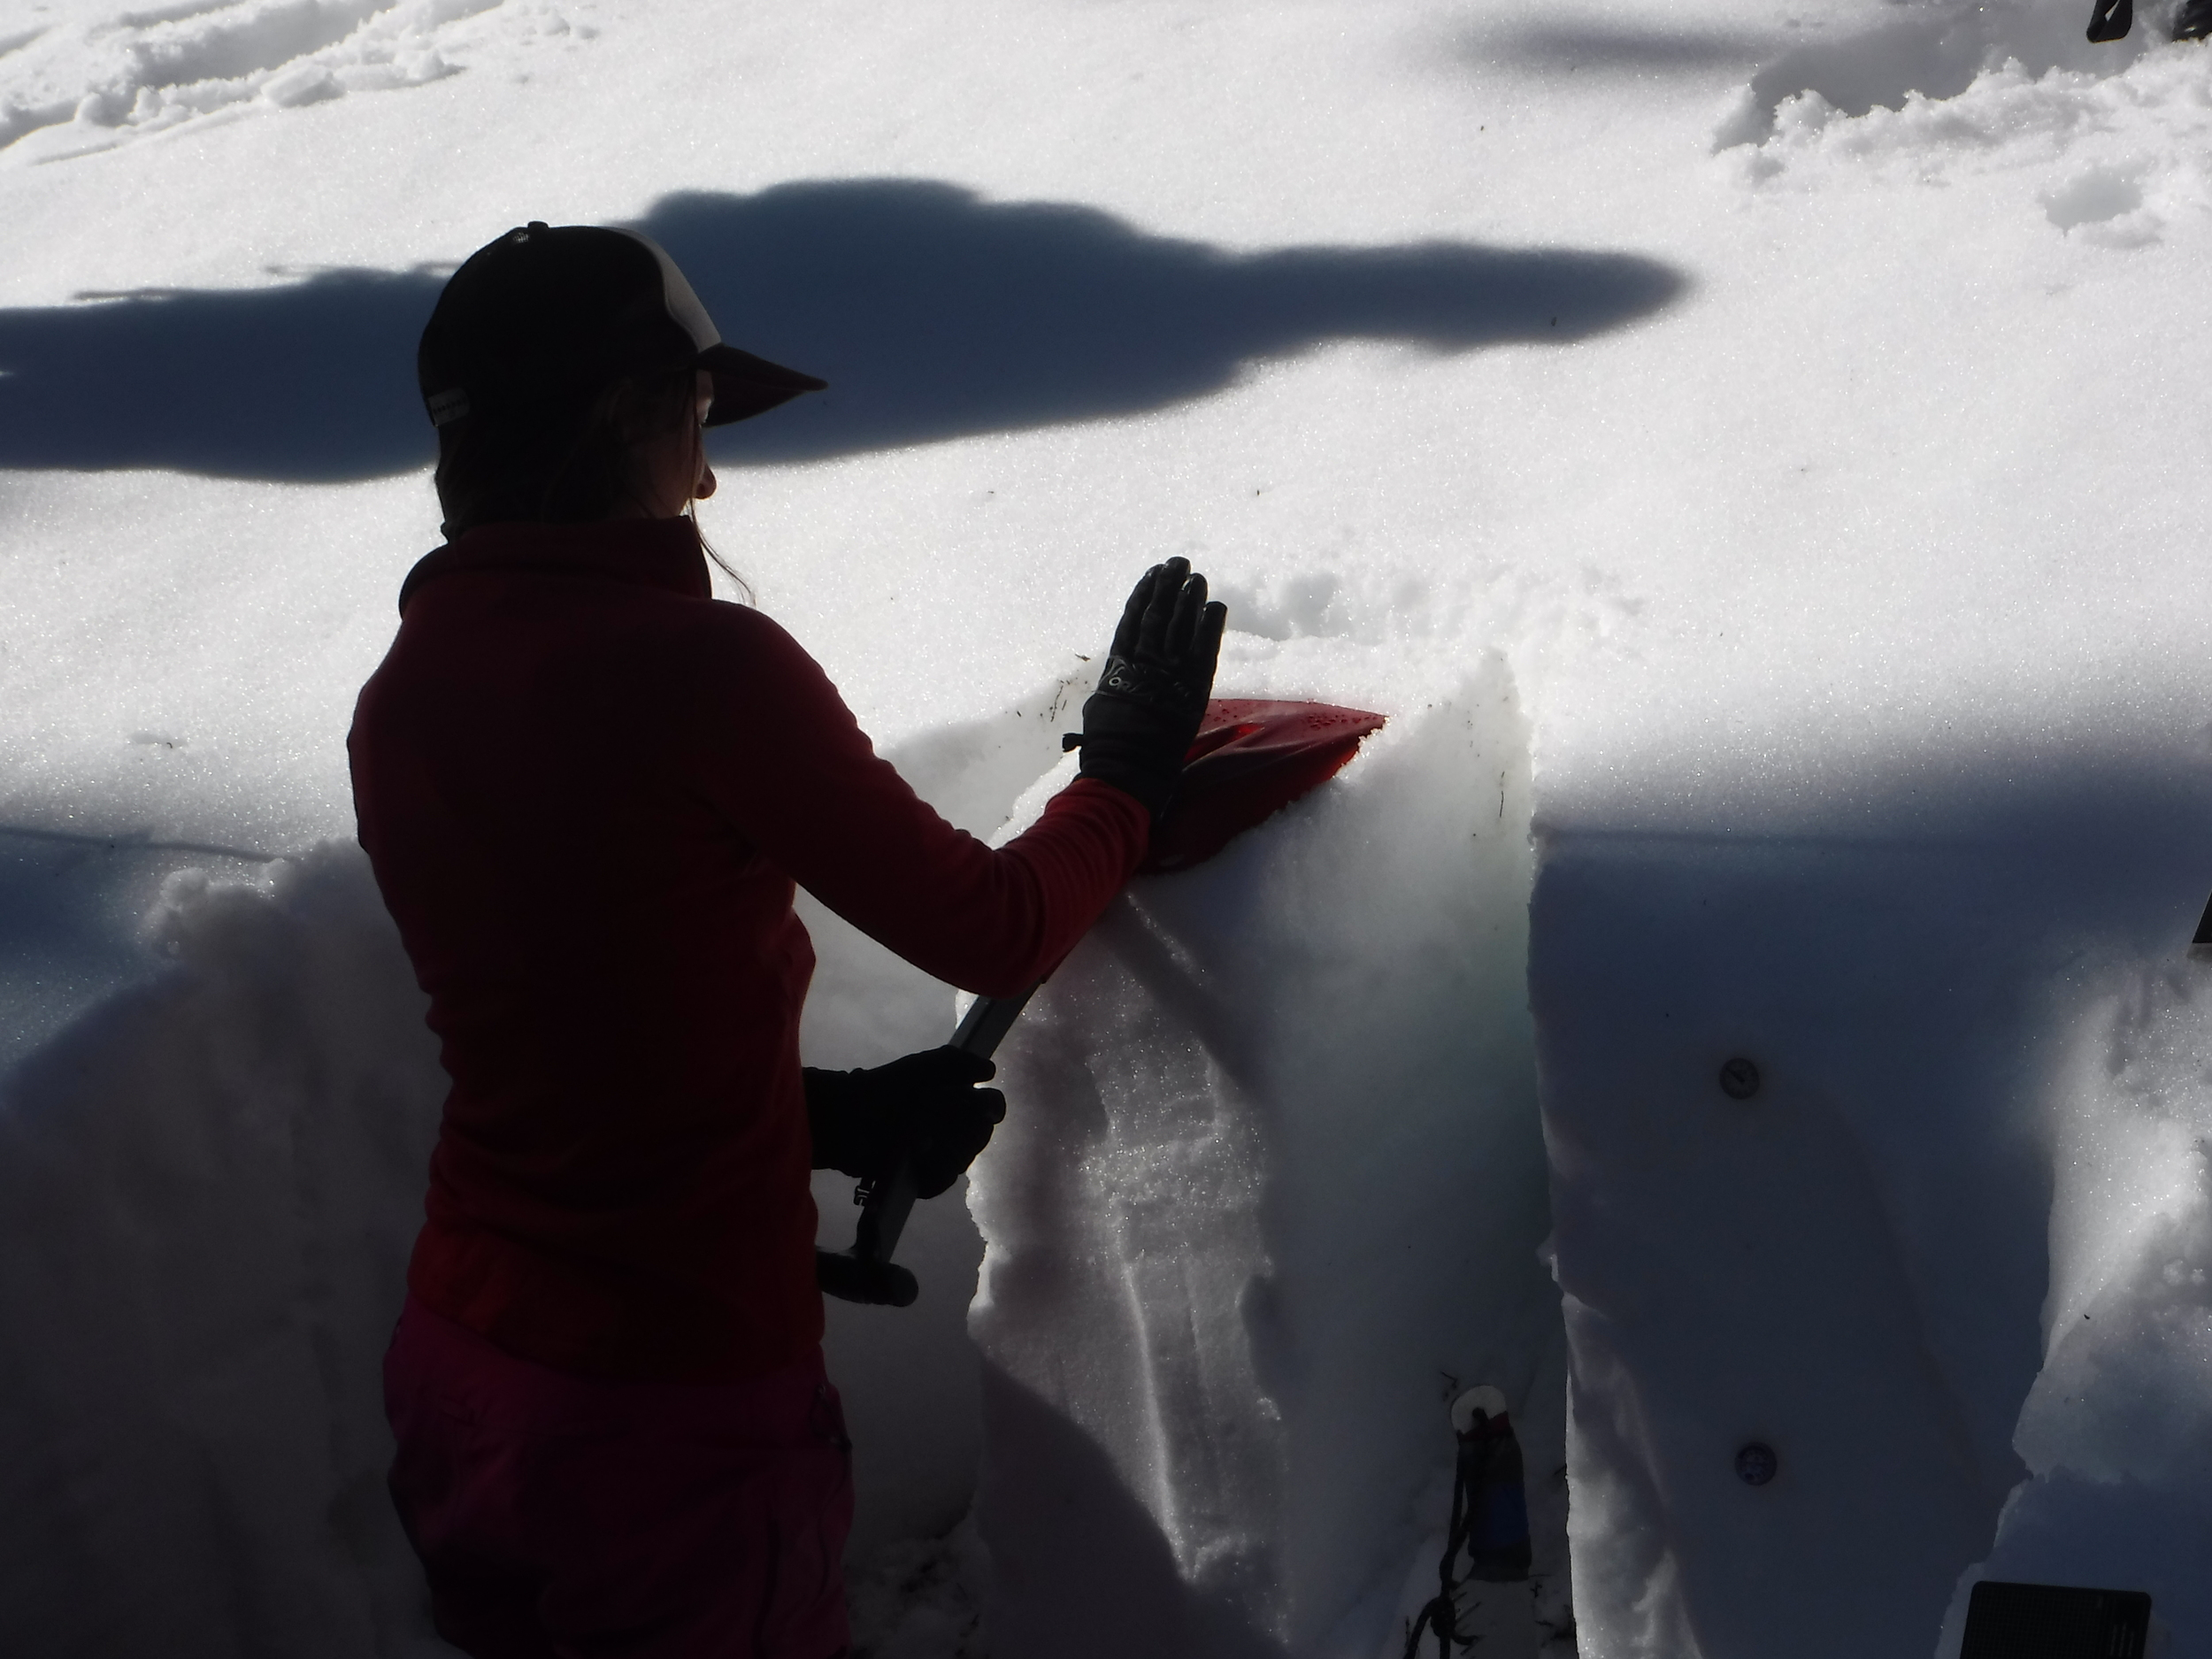 Annah demonstrating how to properly test the snow.